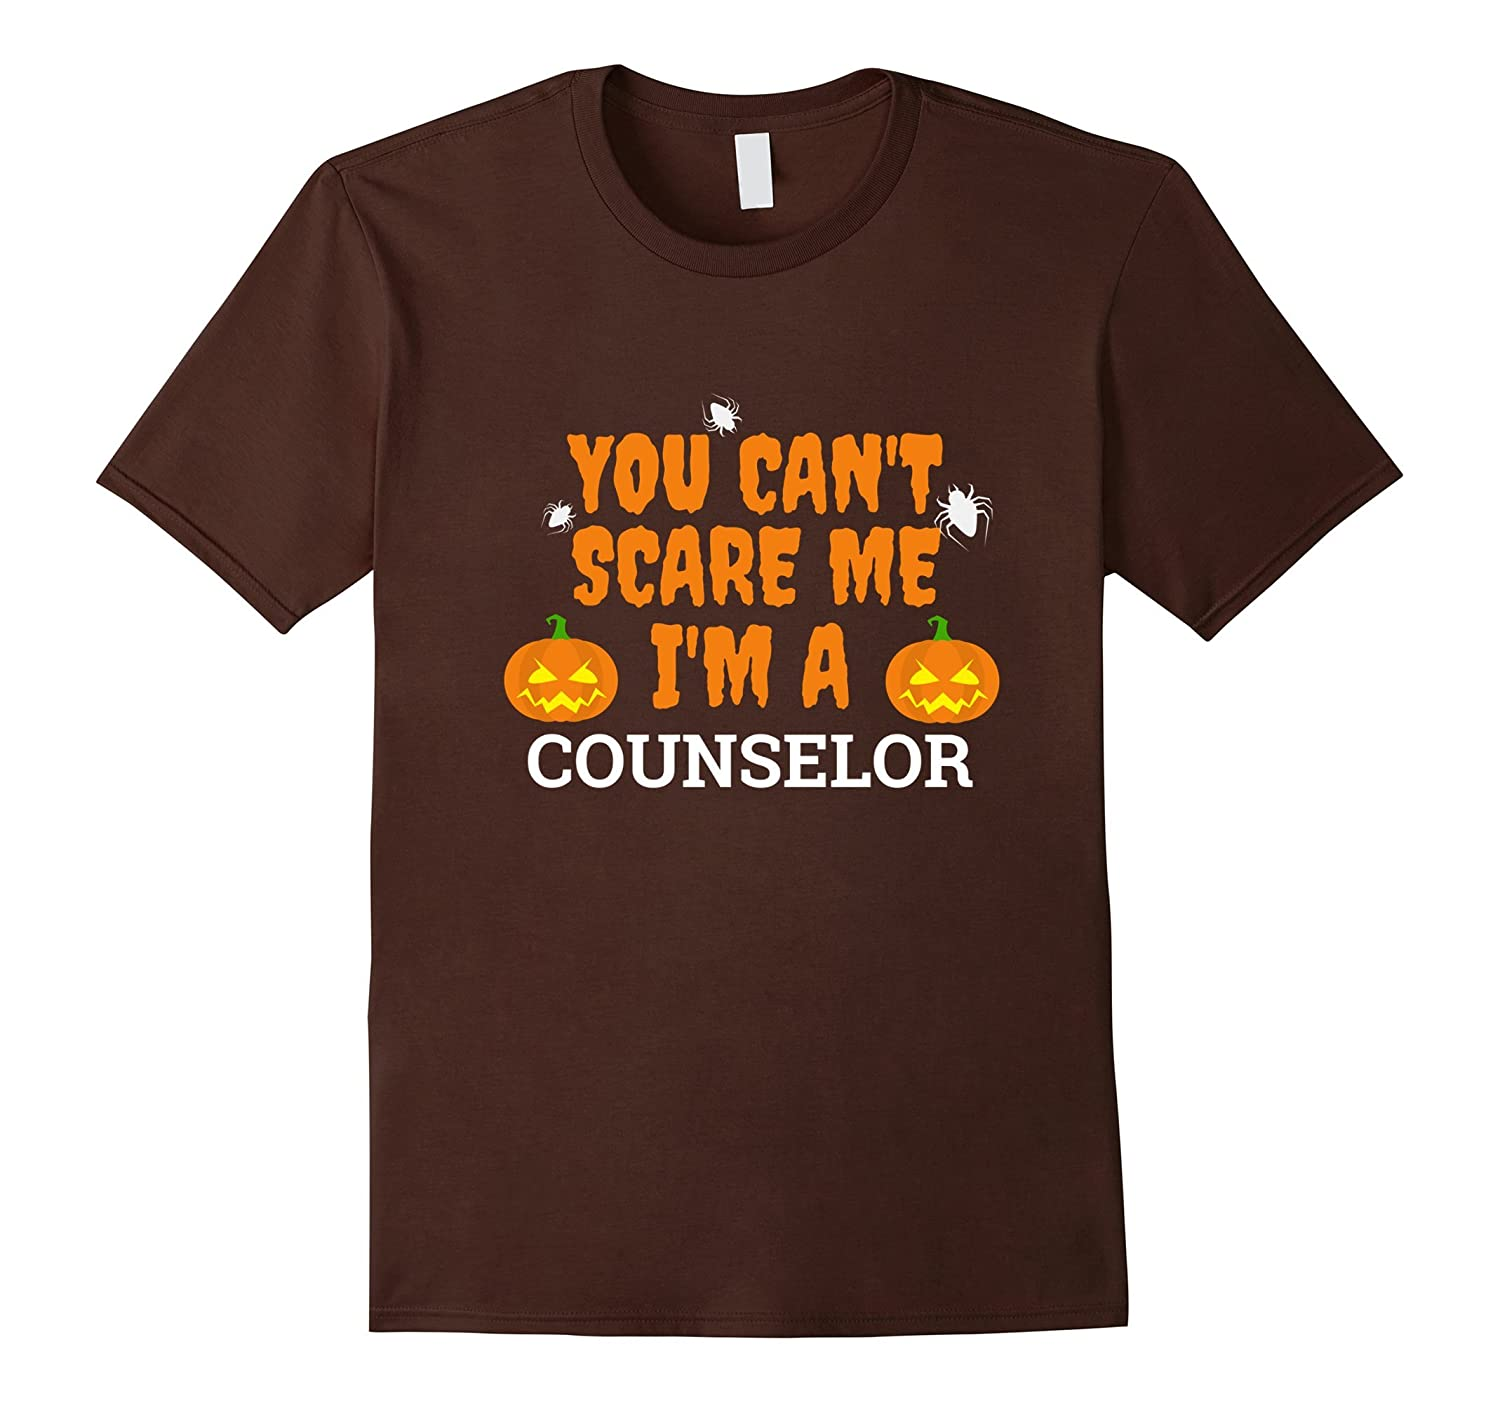 Can't Scare Me I'm a Counselor Funny Scary T-shirt Halloween-FL